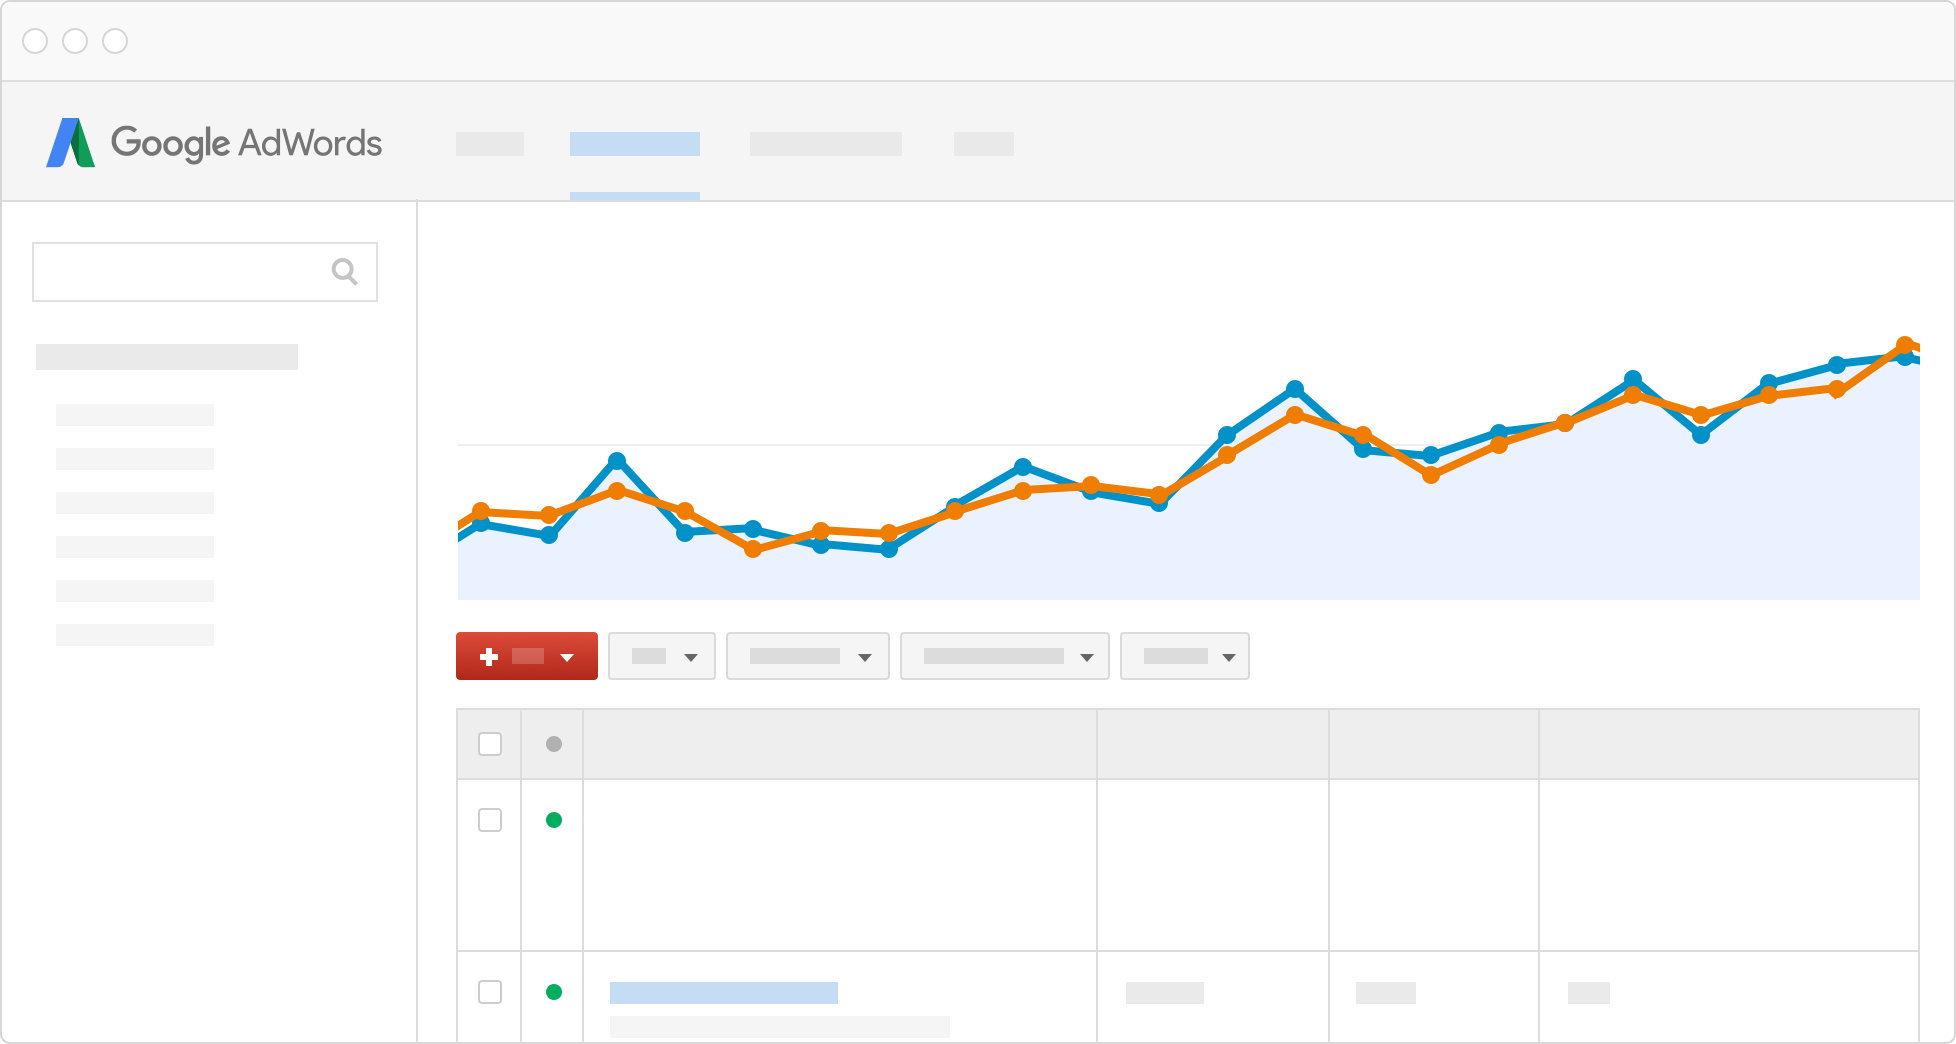 Estimé graphique Google Adwords